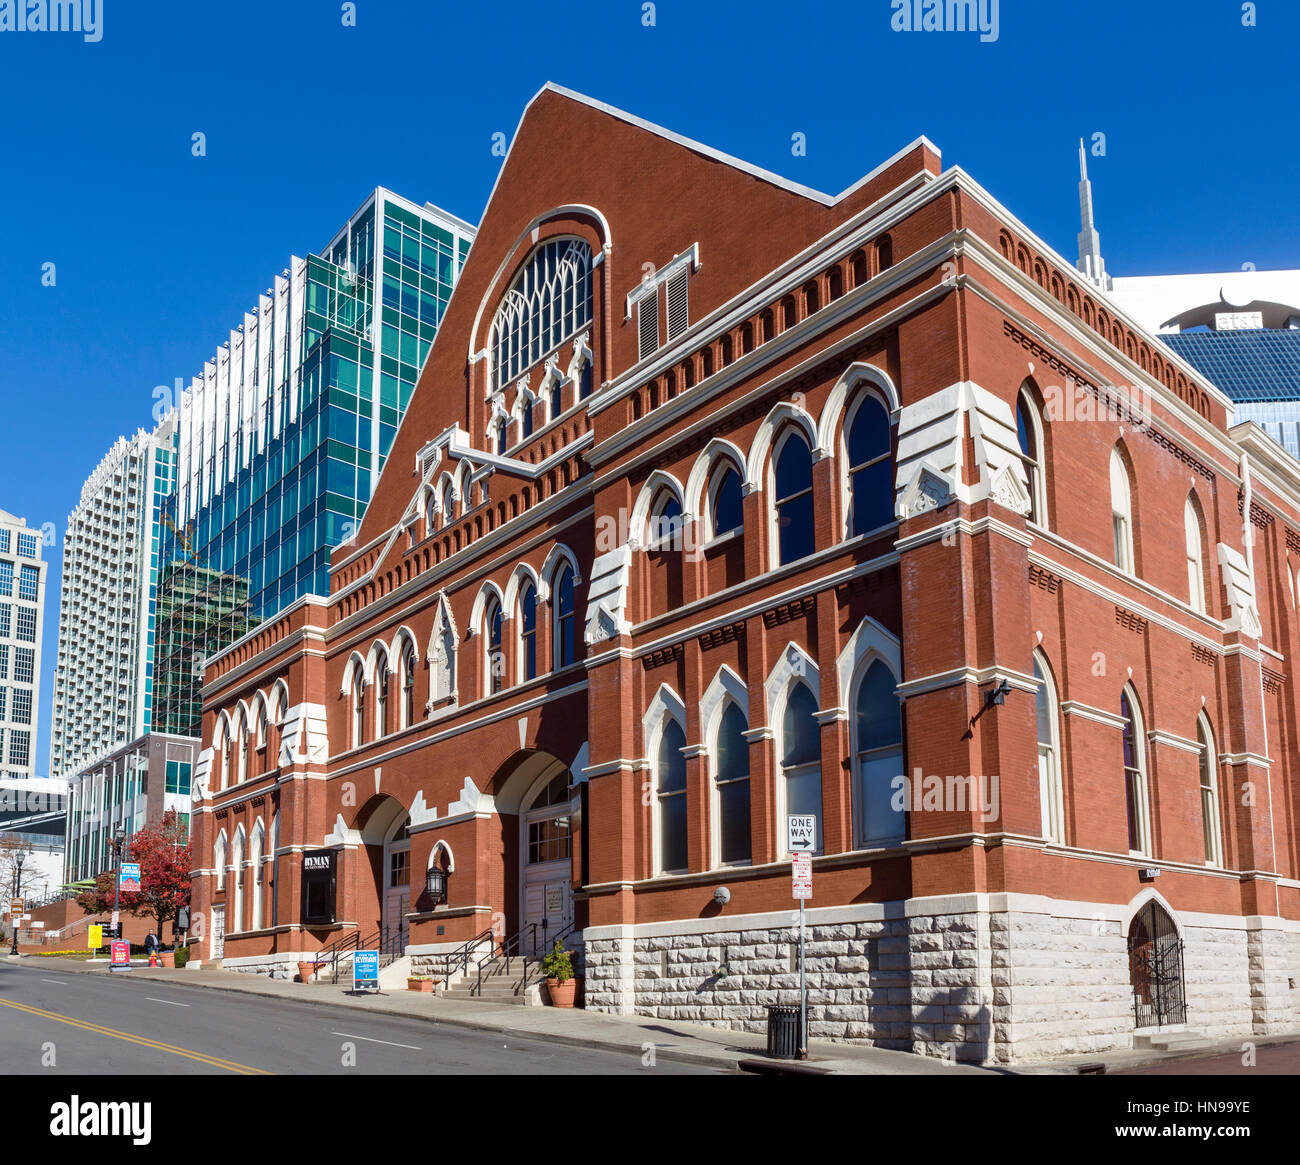 Ryman Auditorium, formerly the Grand Ole Opry House from 1943-1974, Nashville,Tennessee, USA - Stock Image